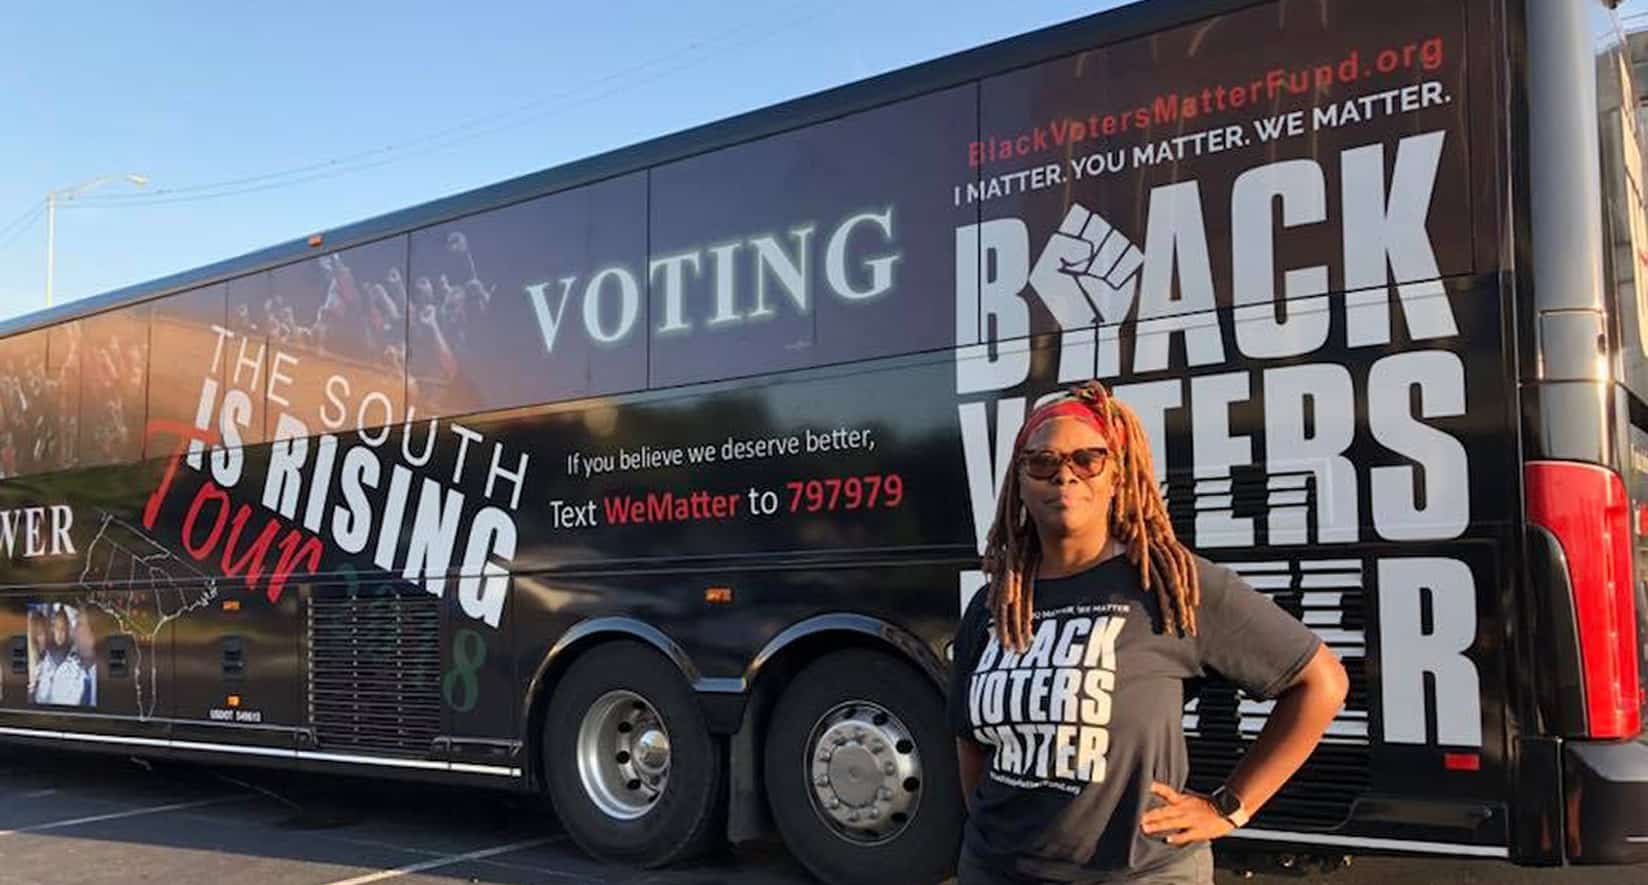 Black Voters Matter